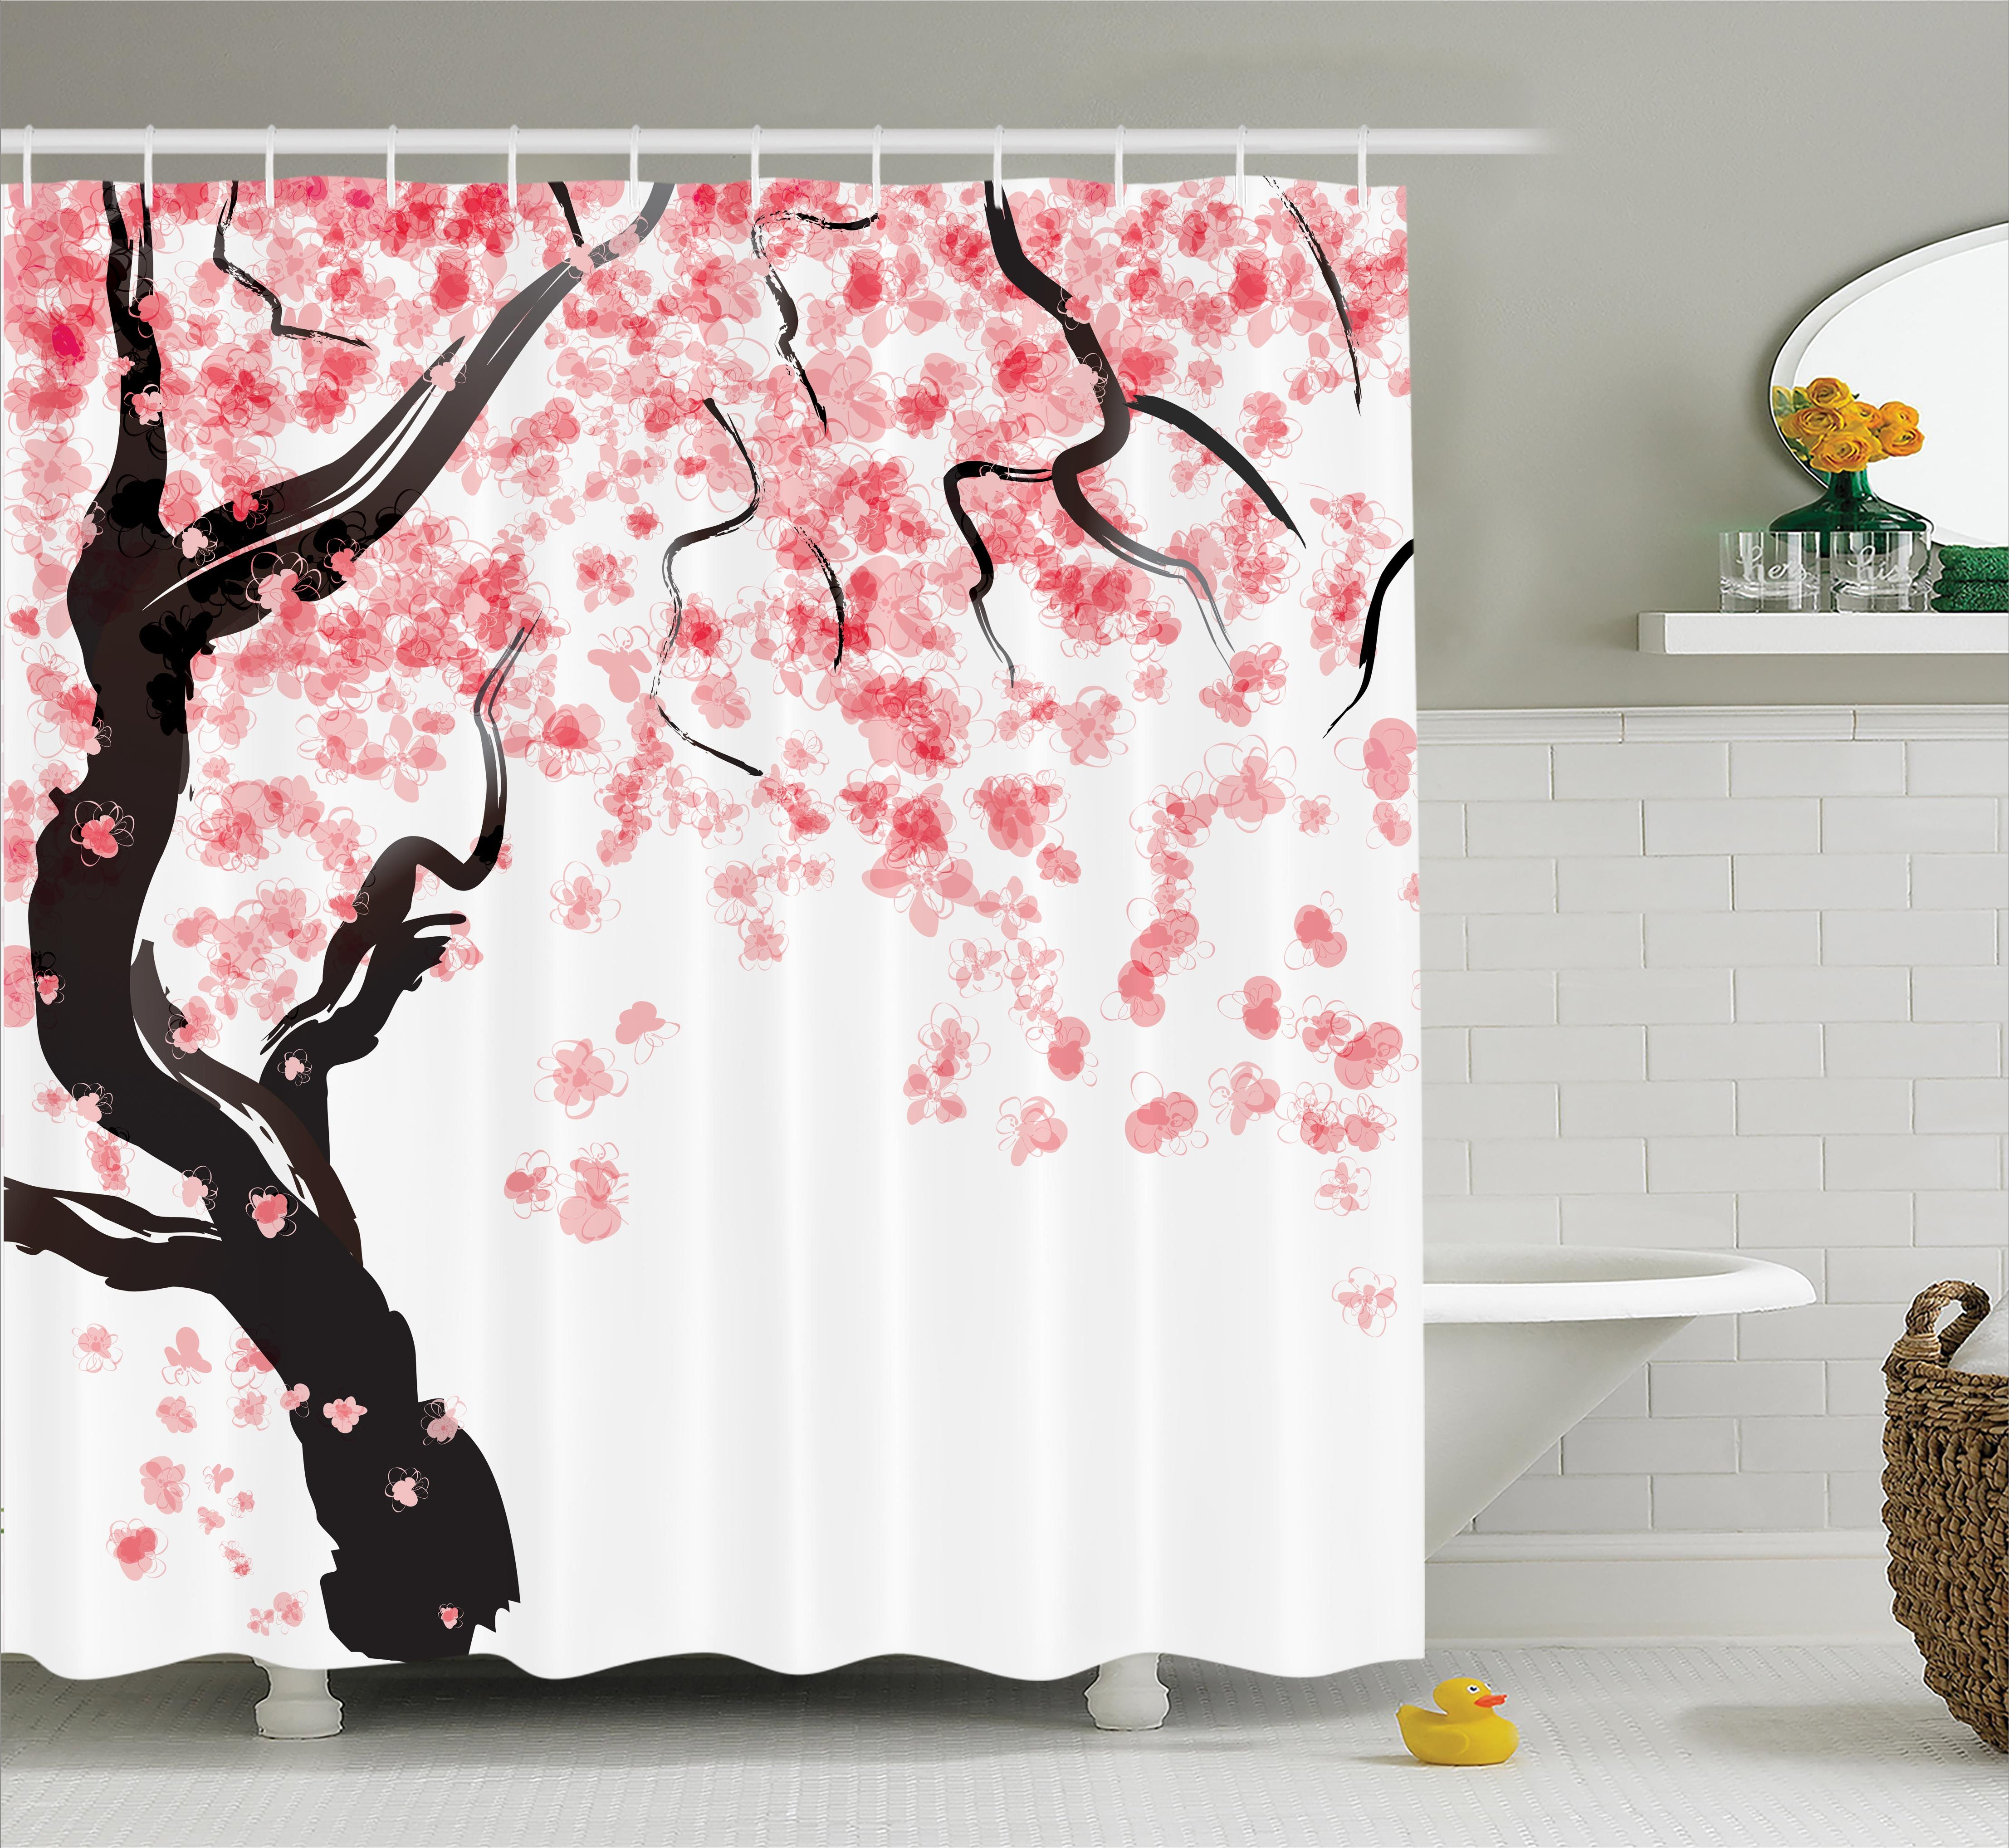 Home Fabric Shower Curtains Pink Shower Curtains Peach Shower Curtain